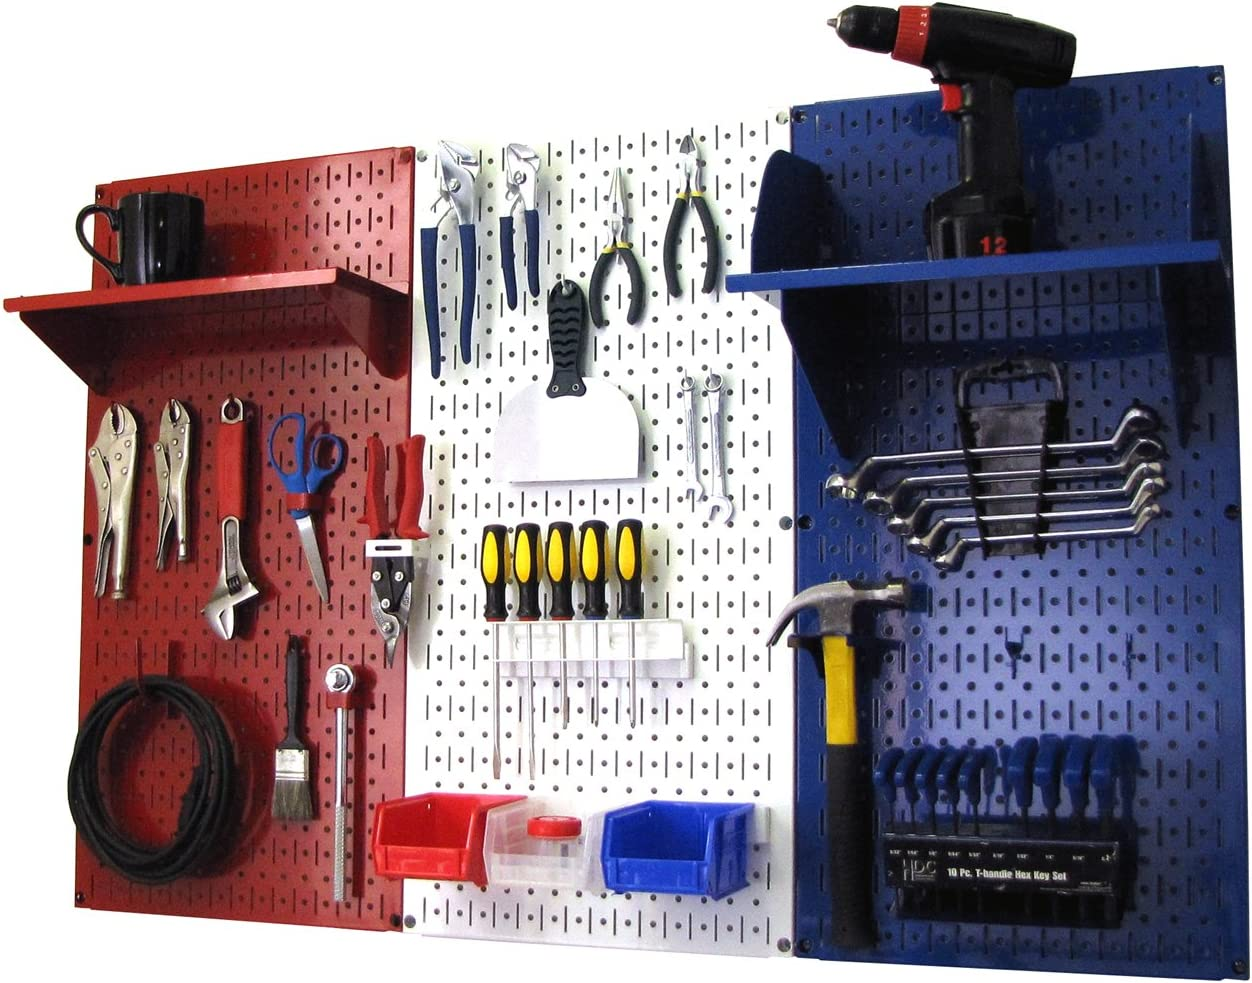 Wall Control Patriot Pegboard Organizer American Made 4ft Metal Pegboard Tool Storage Kit Made in The USA